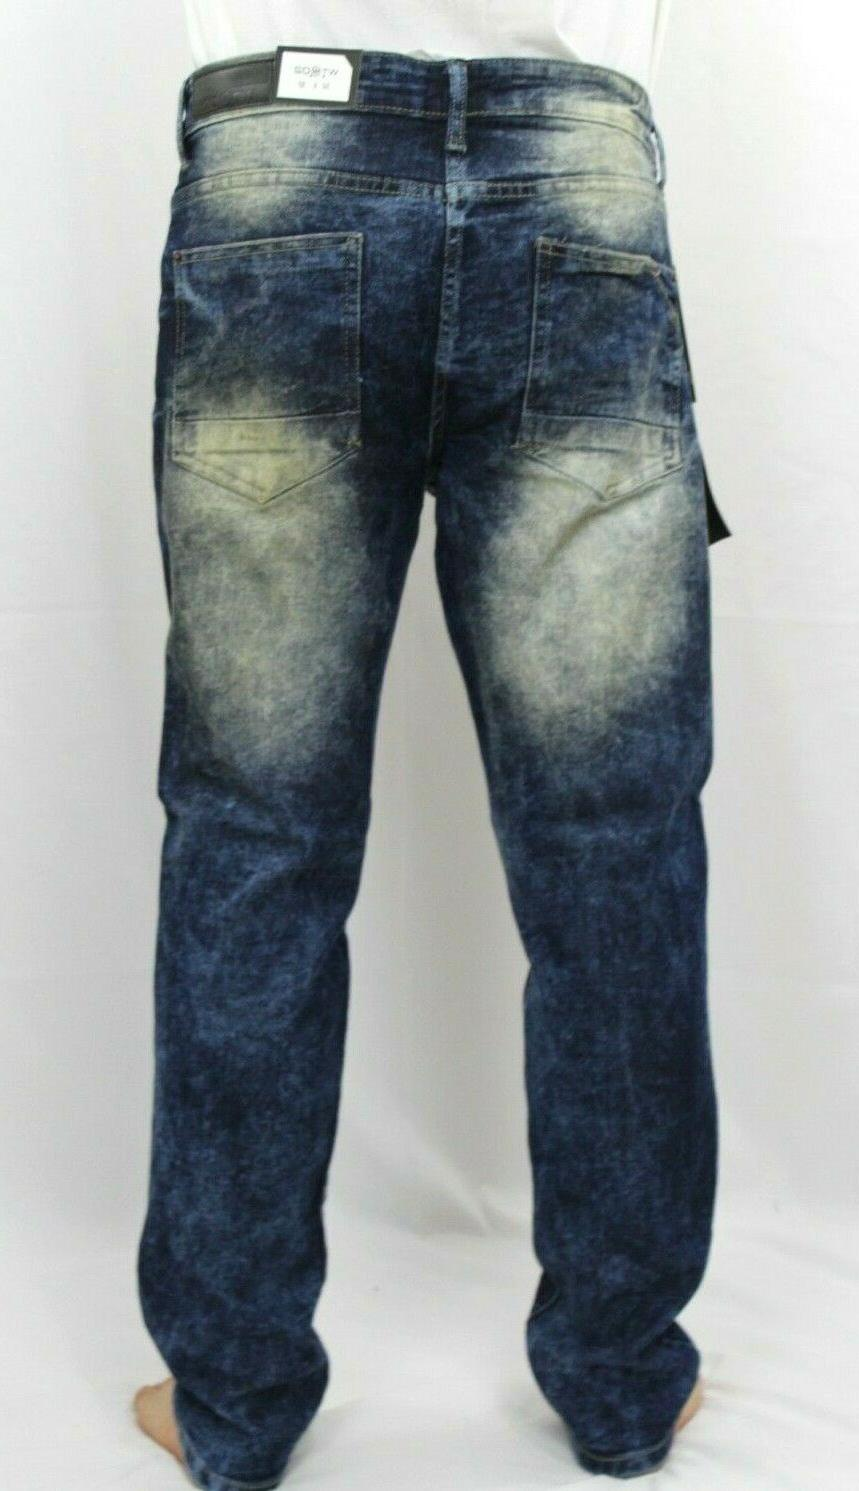 WT02 Ripped Stretch Distressed